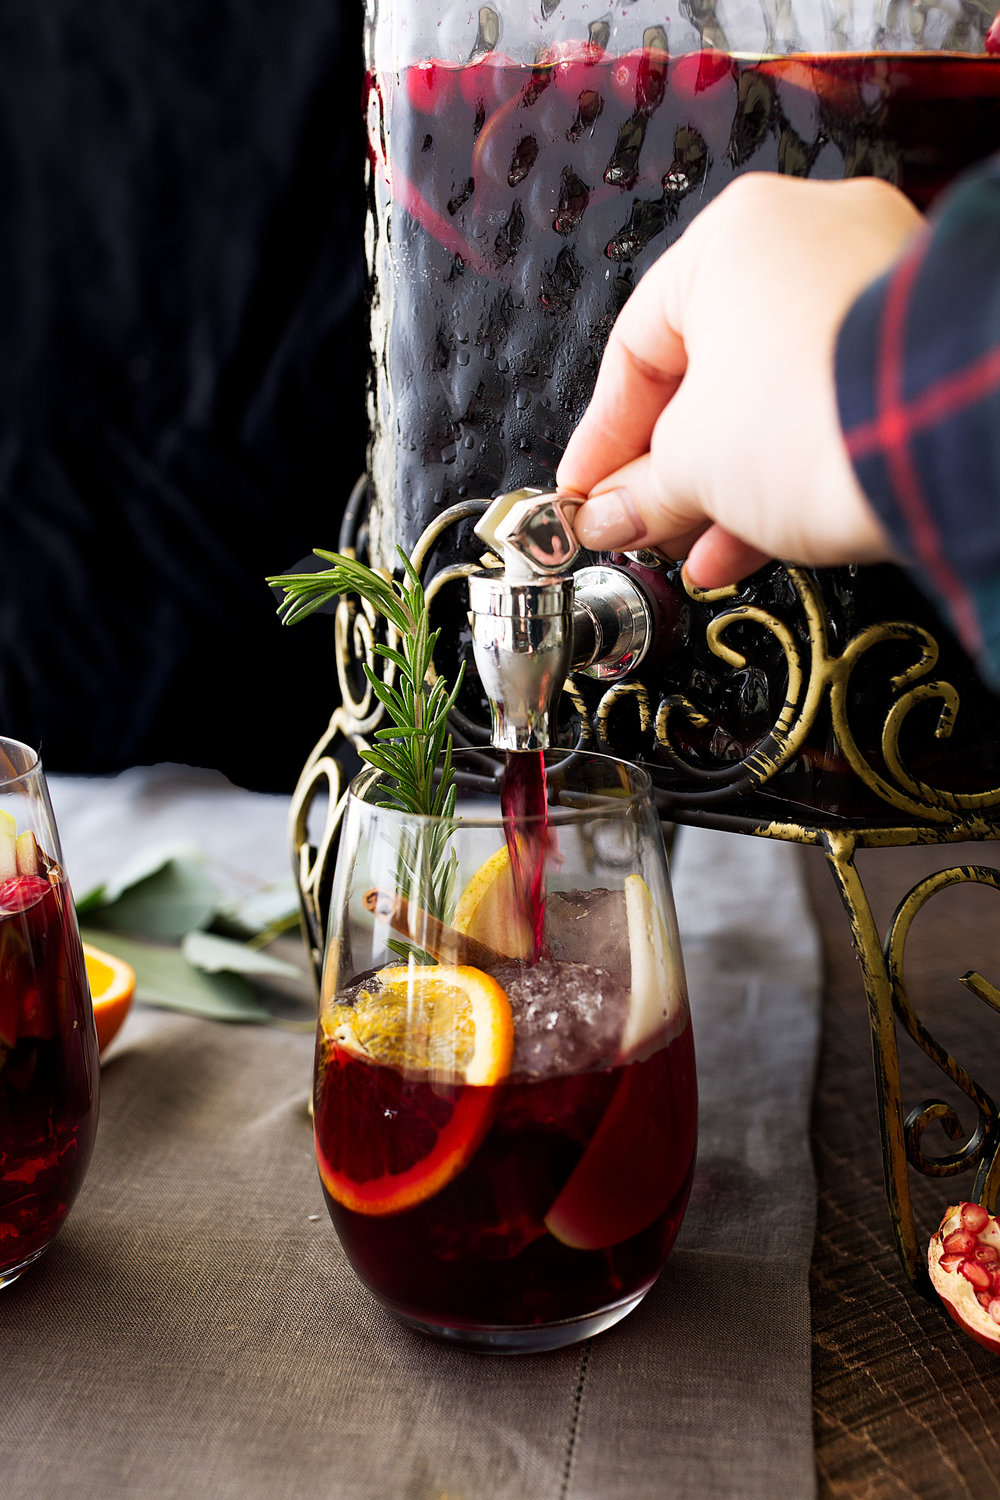 Home-depot-winter-sangria-2.jpg